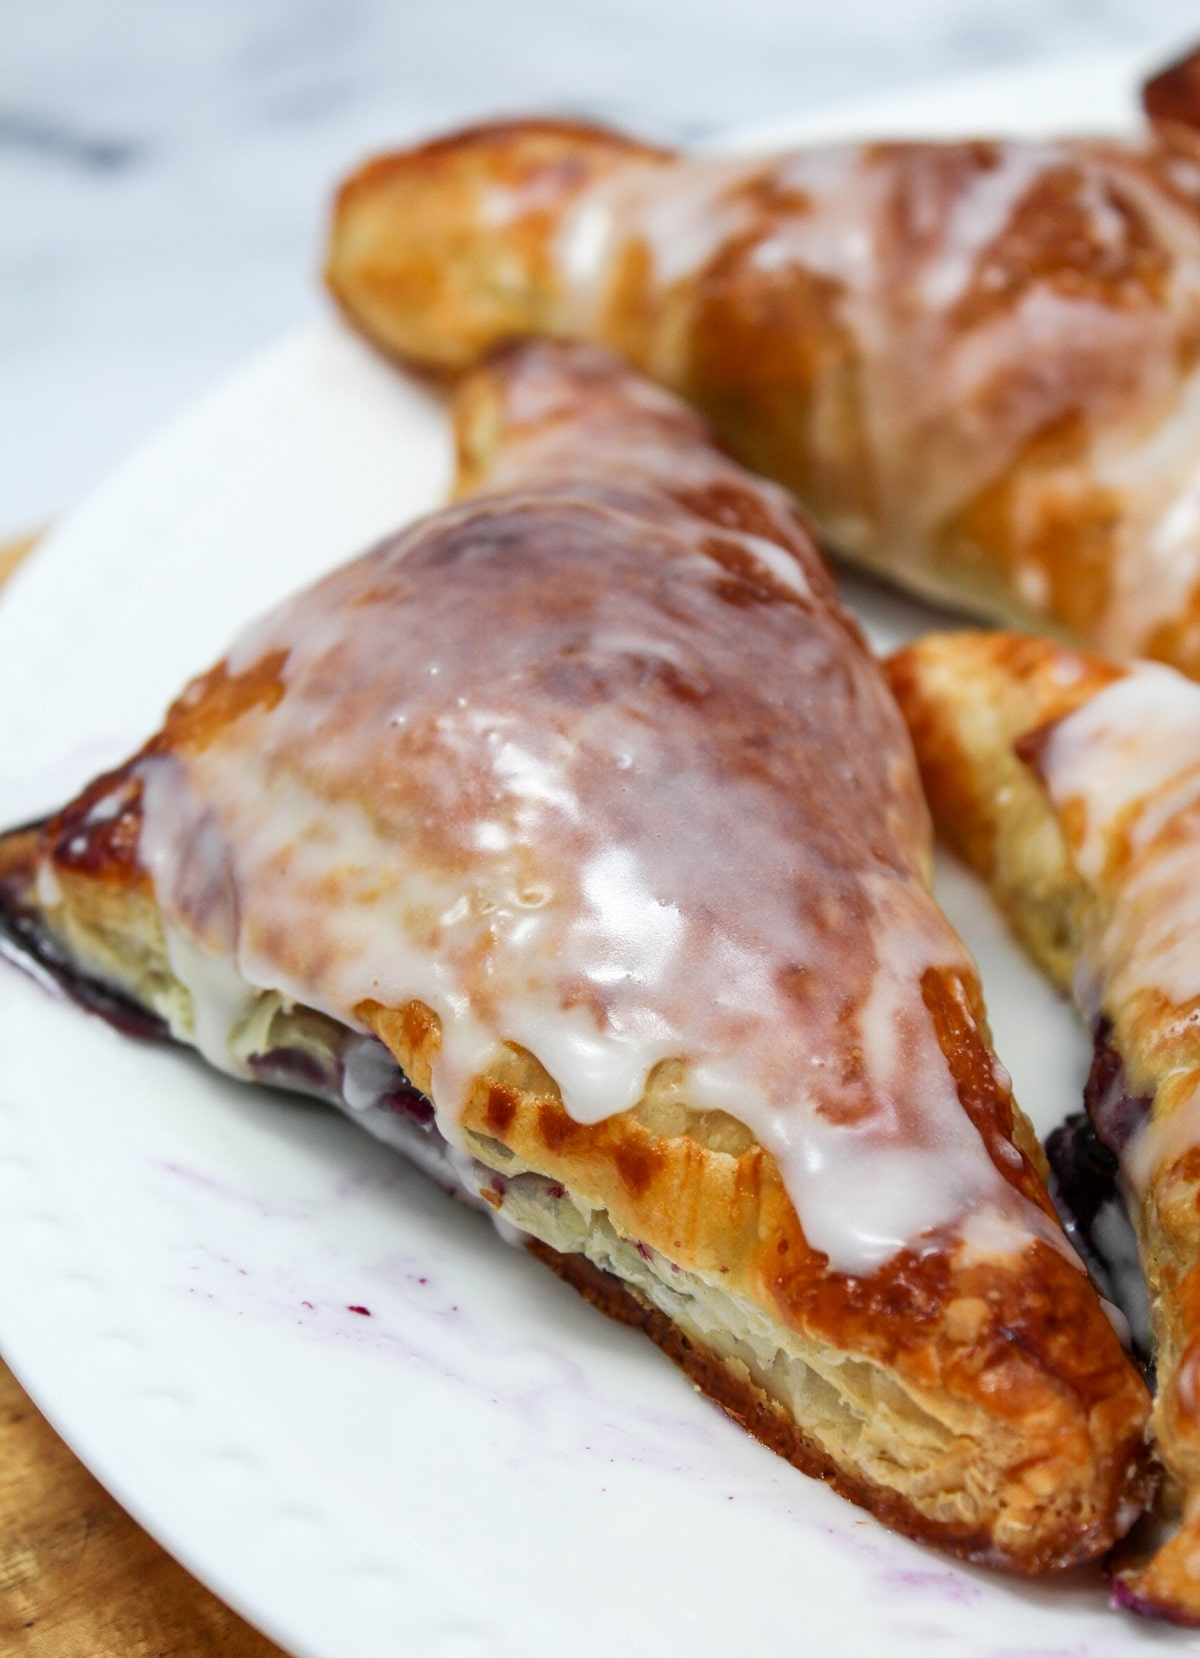 cooked blueberry turnover with frosting on a white plate